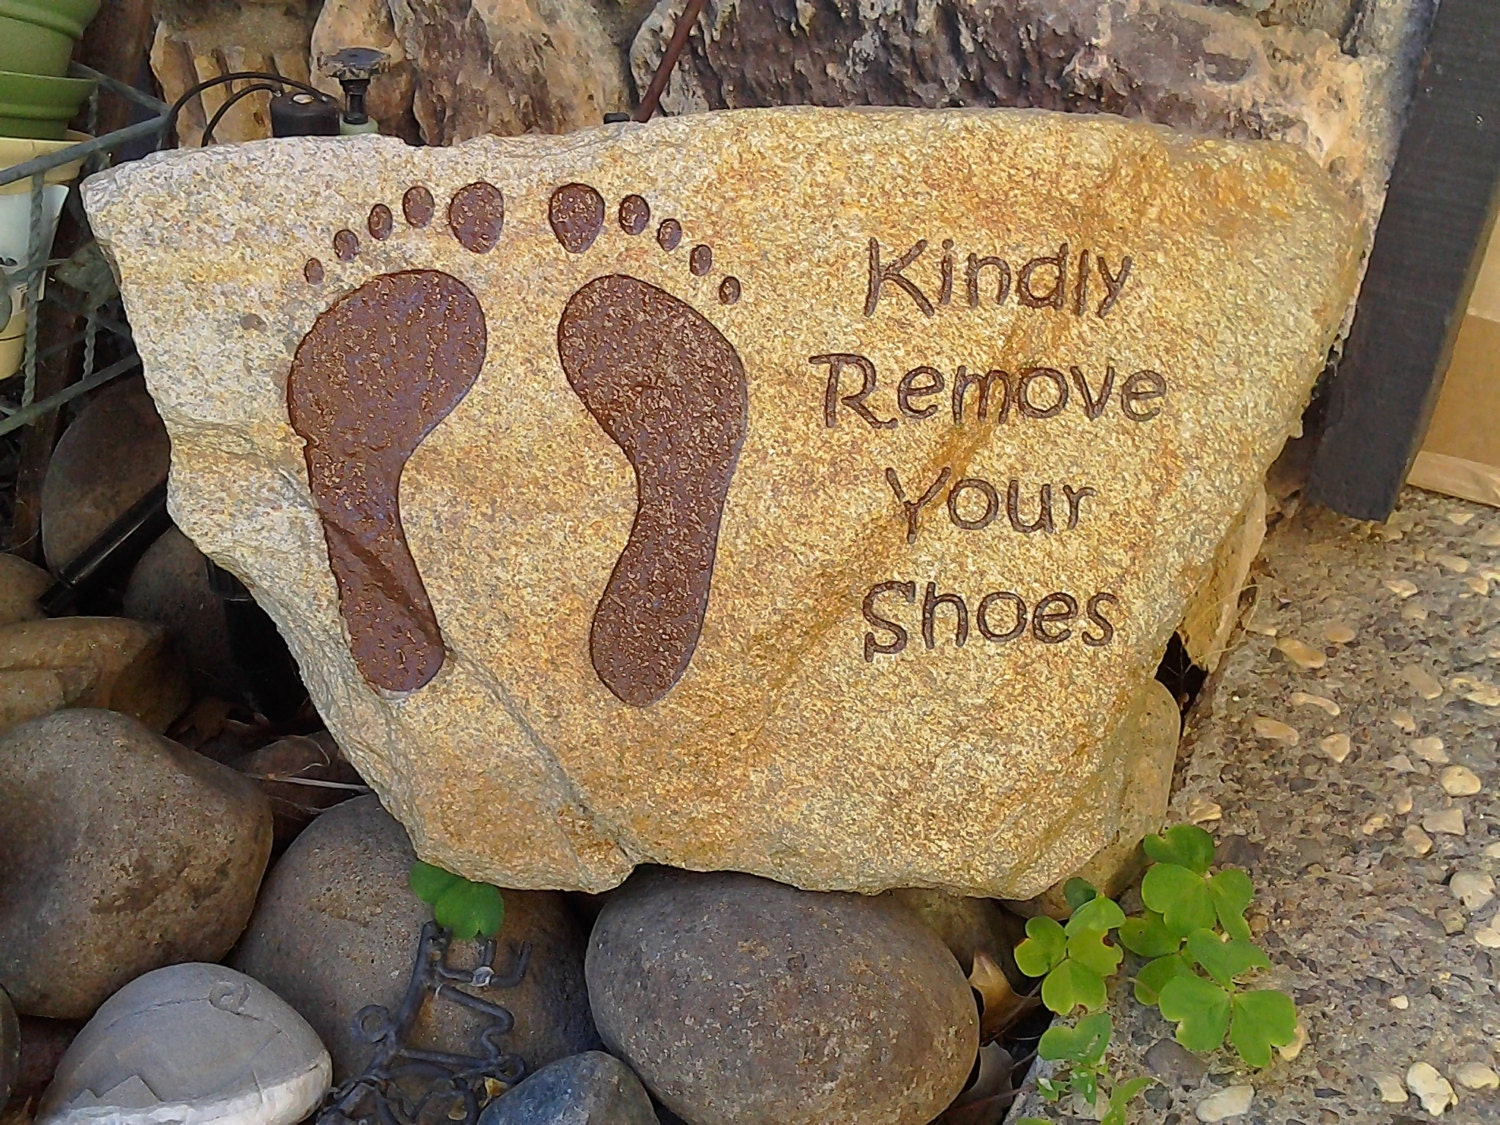 Engraved StonesKindly Remove Your Shoesremove your shoes | Etsy